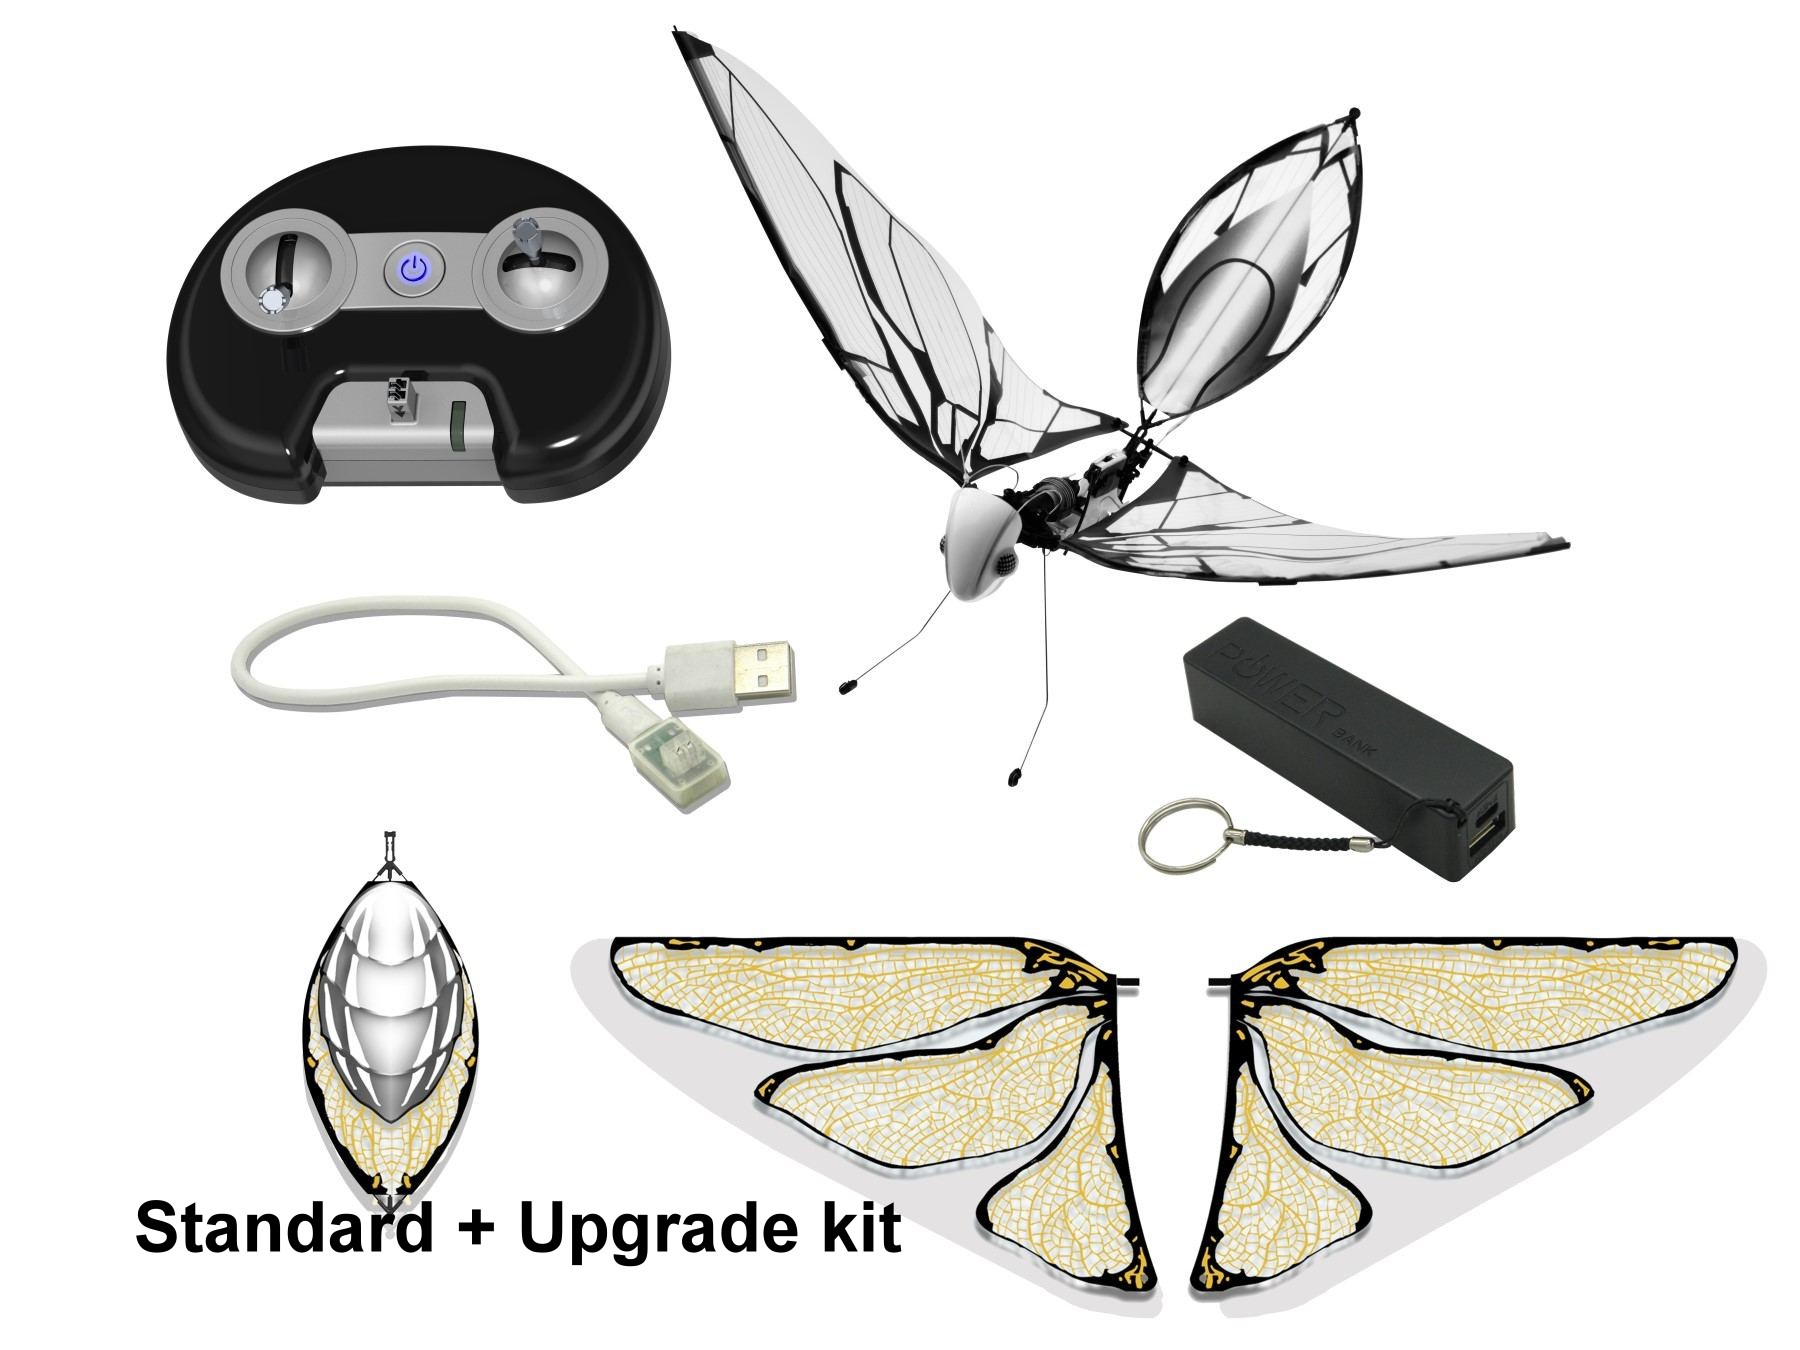 MetaFly upgrade pack